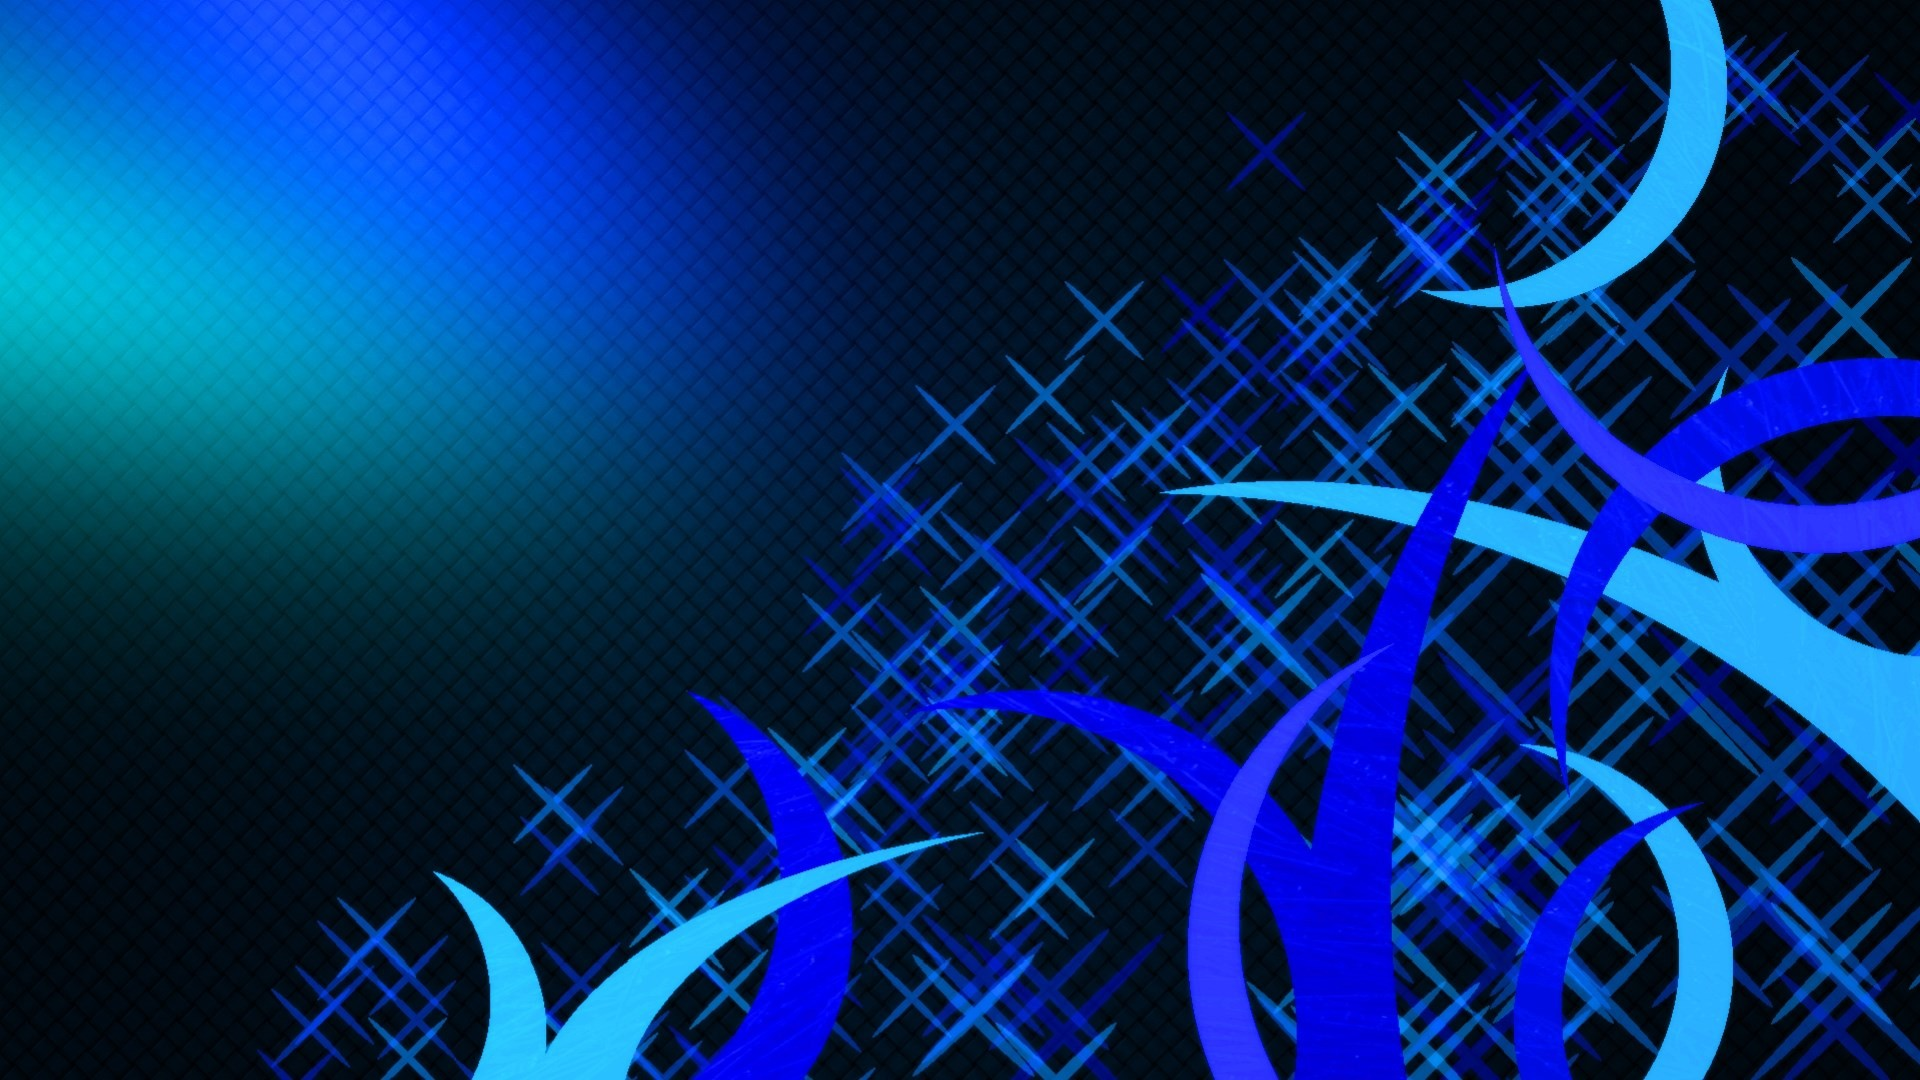 blue computer wallpaper backgrounds – blue category